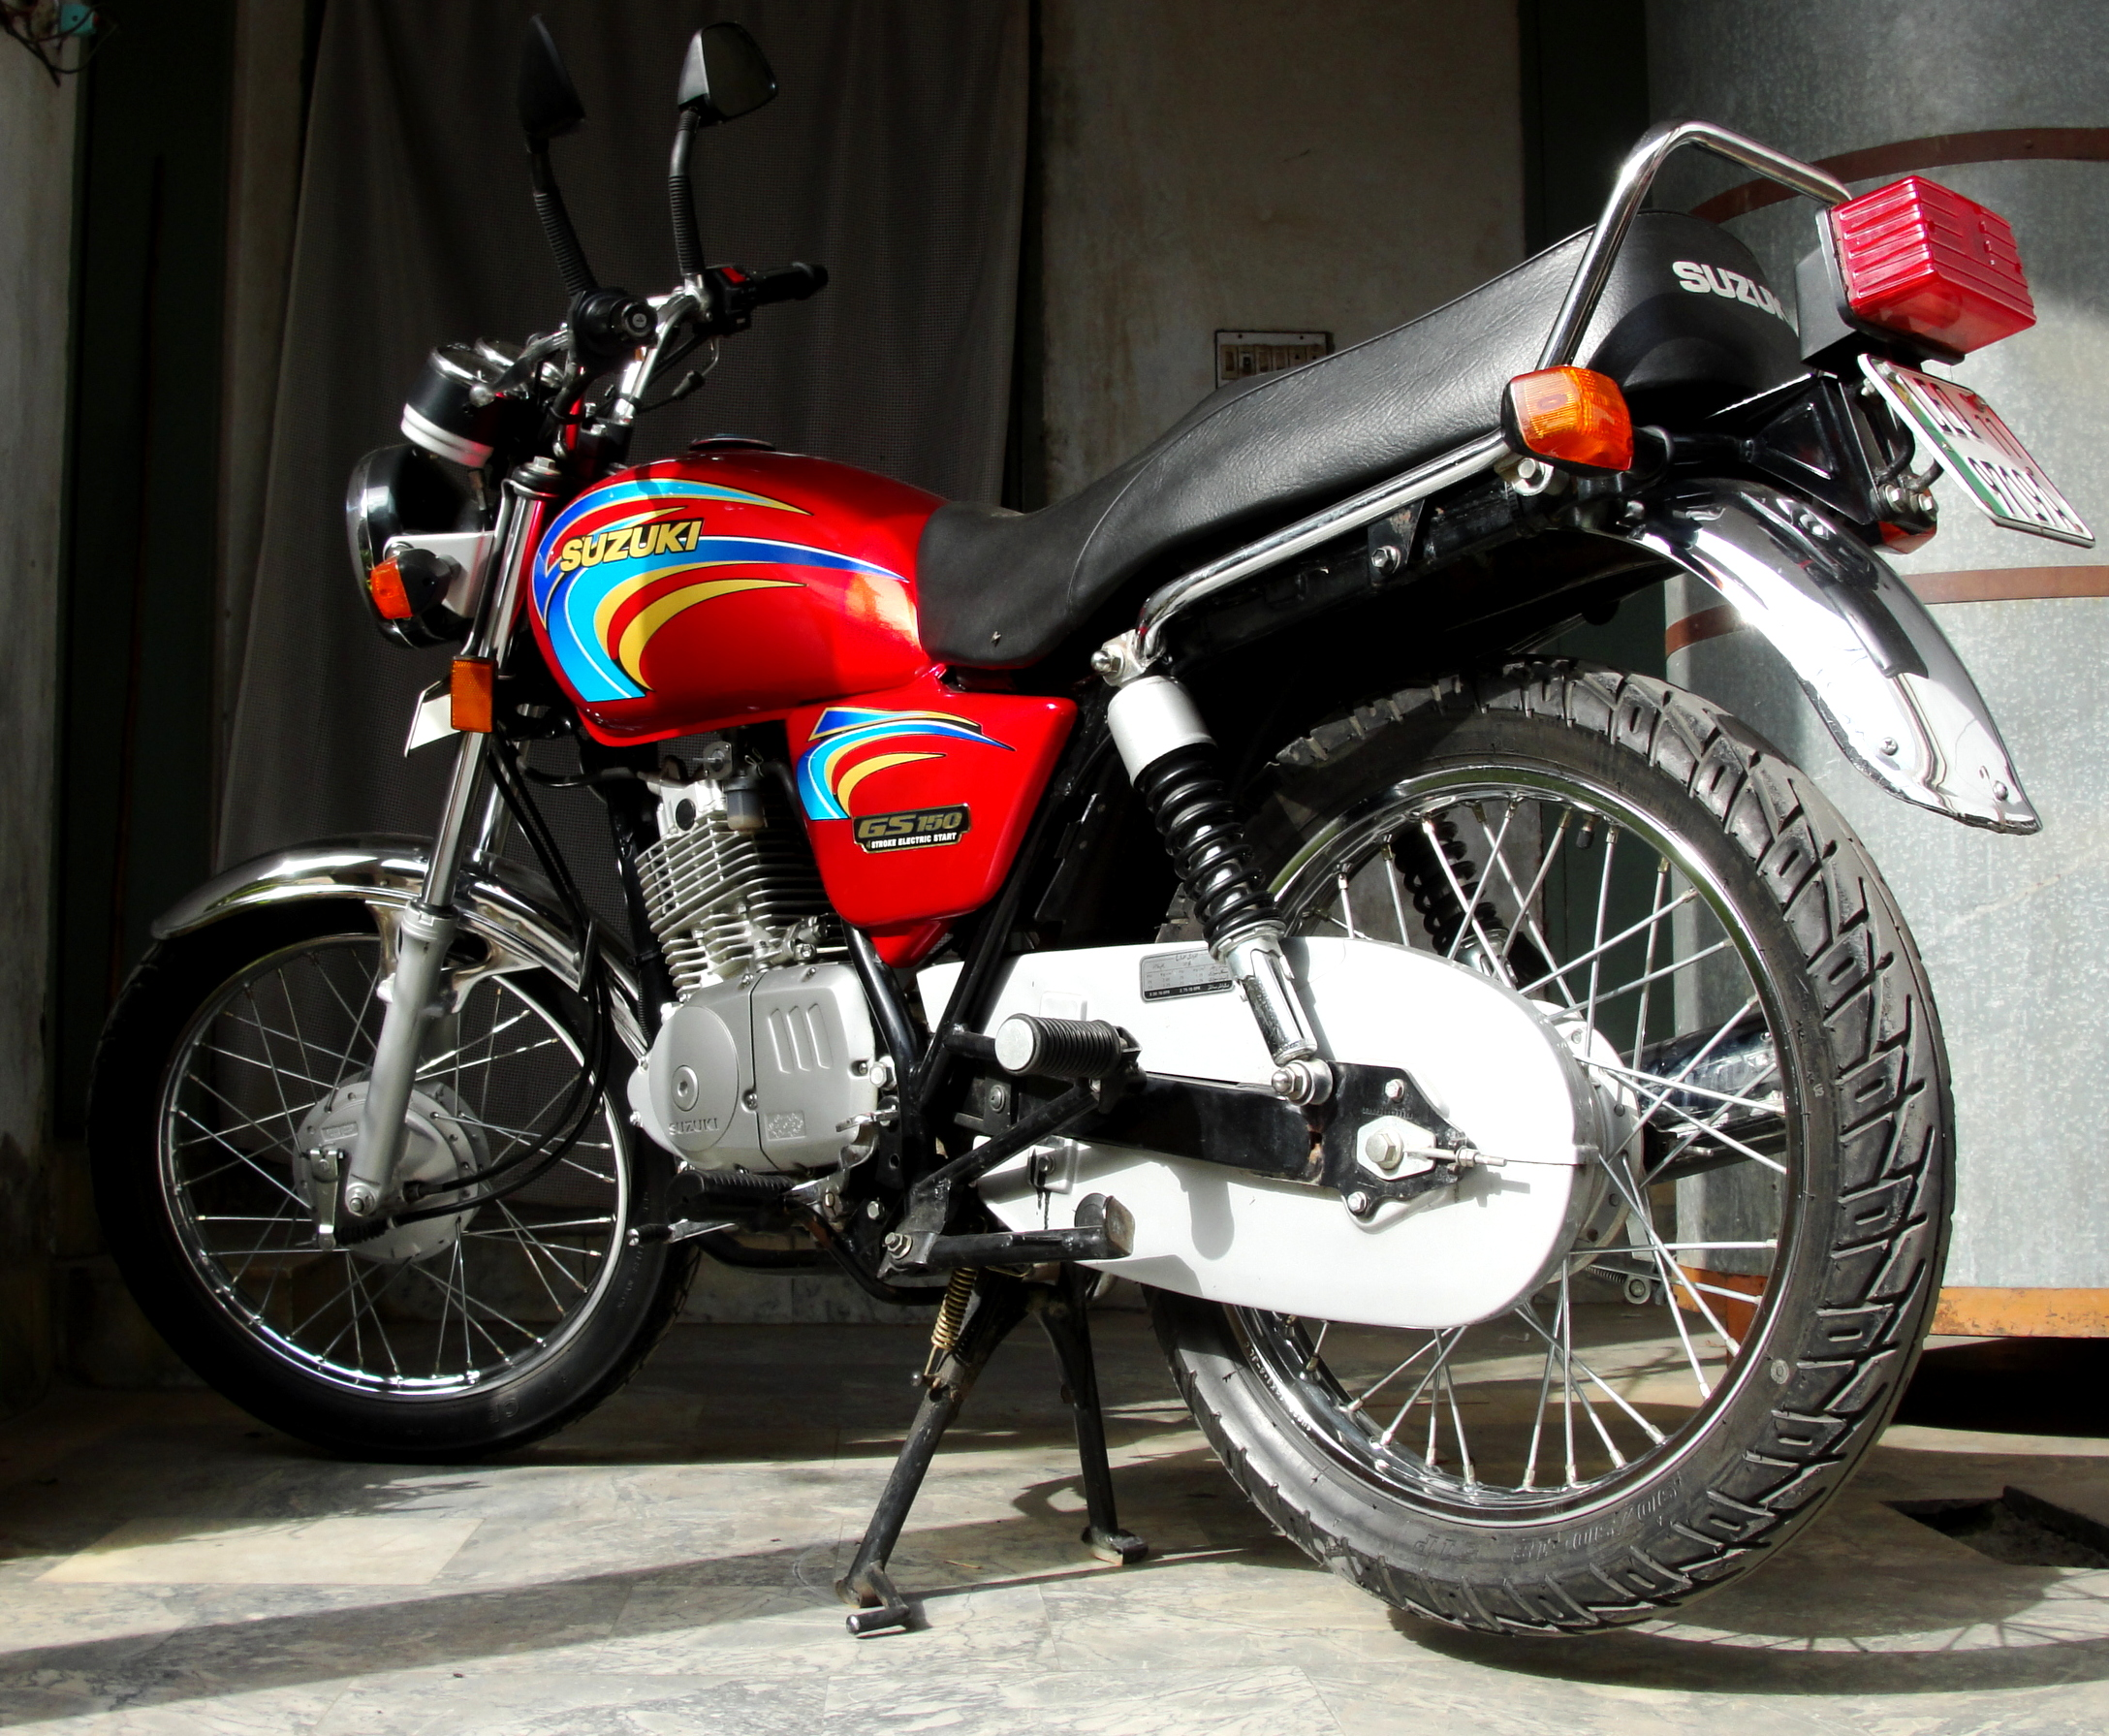 1991 suzuki gs 125 r pics specs and information. Black Bedroom Furniture Sets. Home Design Ideas